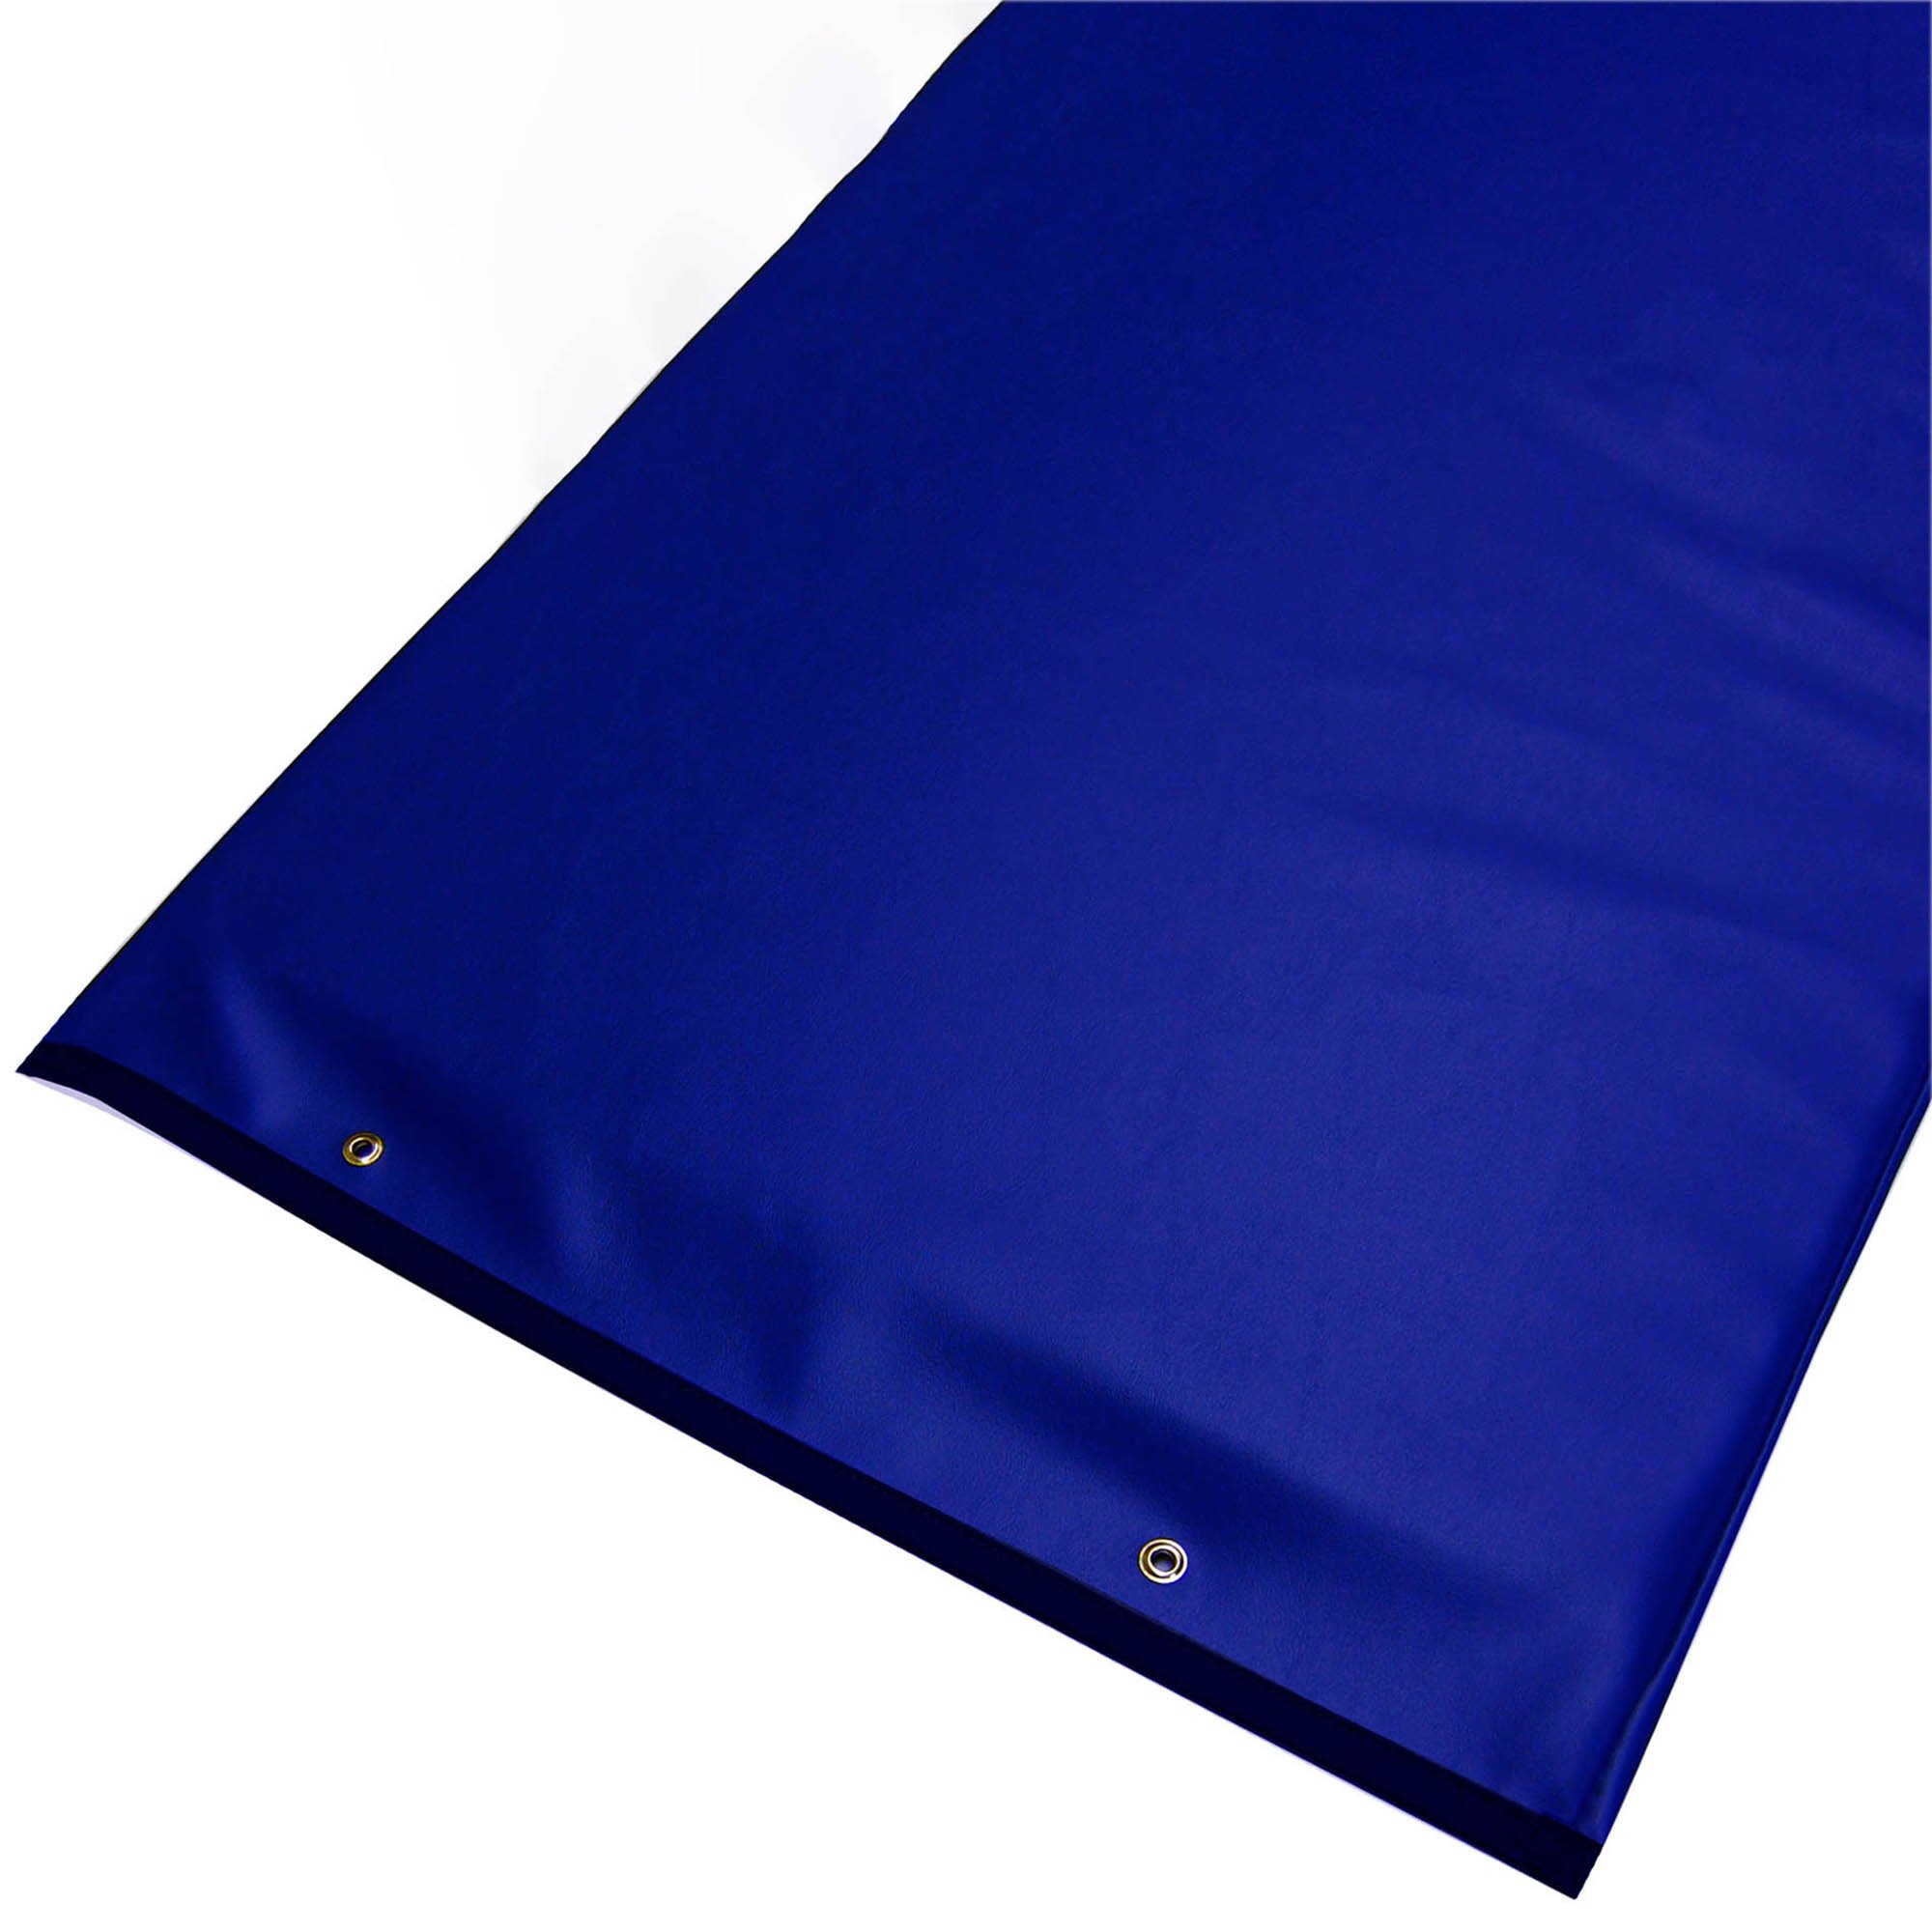 Standard Plus Radiolucent X-Ray Firm Foam Table Pad - Blue Vinyl, With Grommets 80